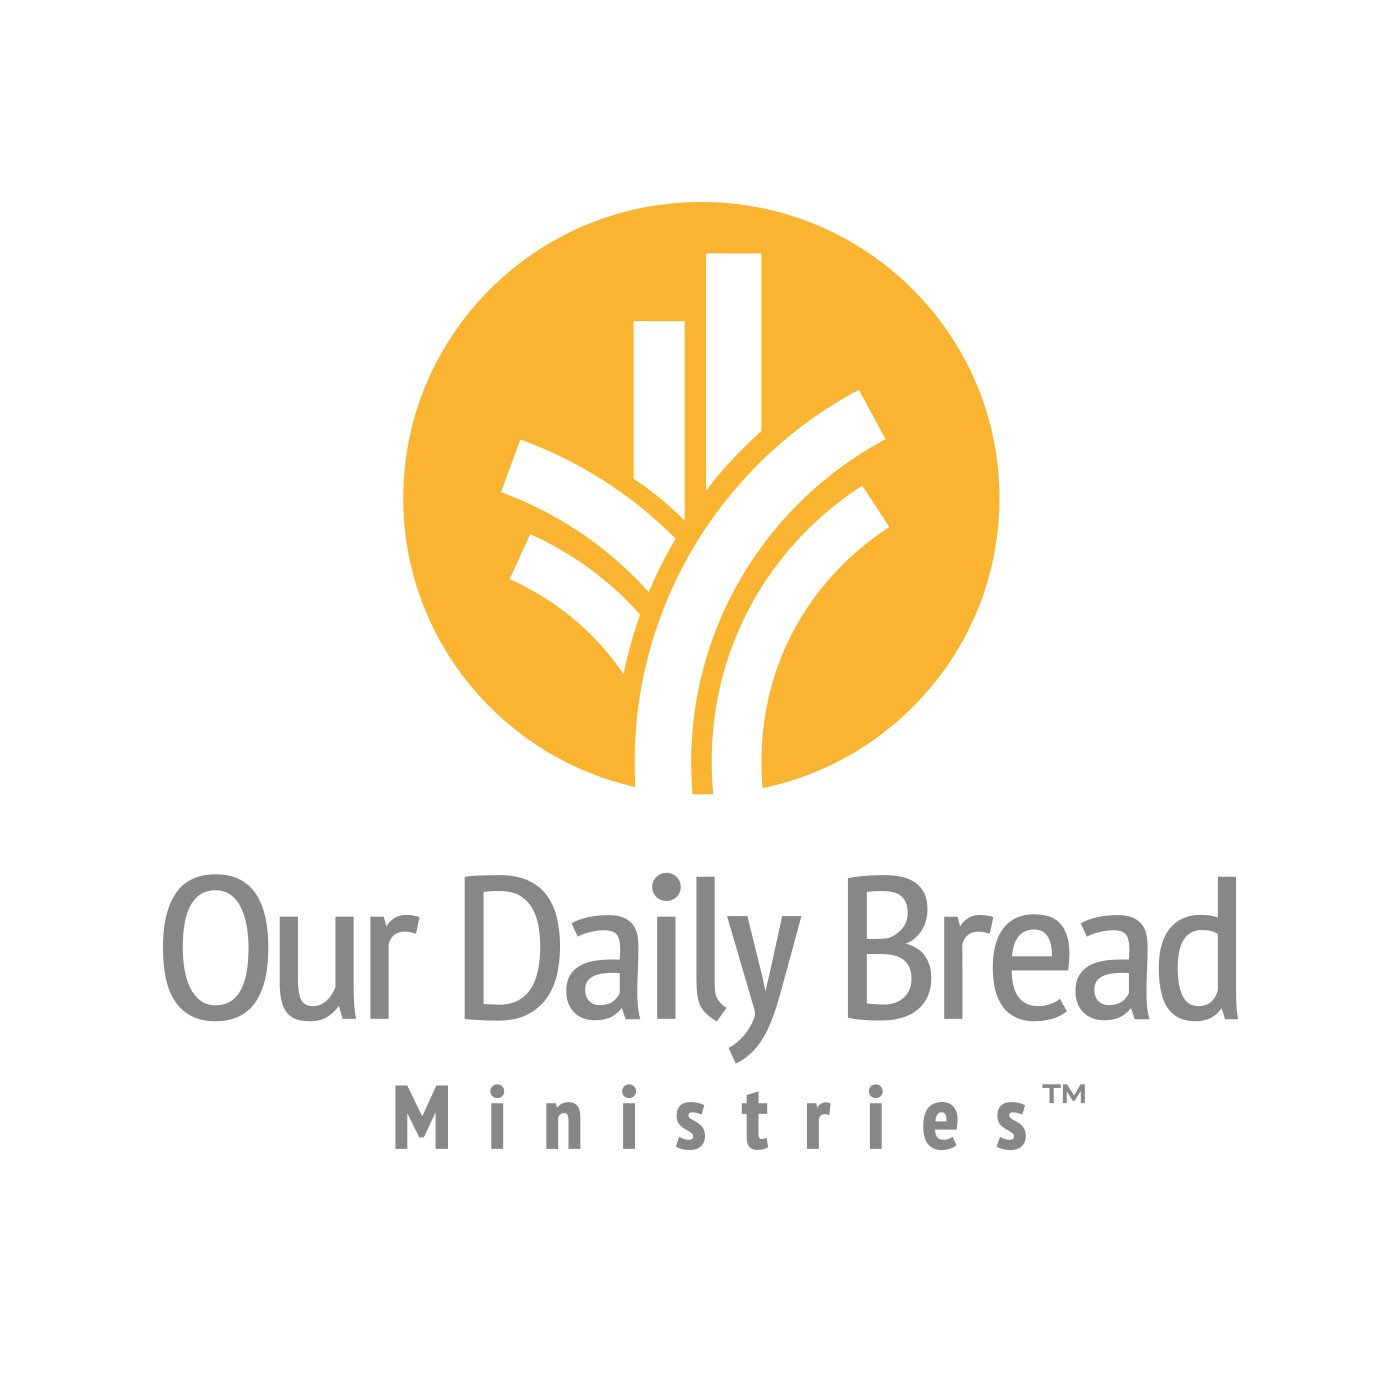 Our Daily Bread 18th January 2021, Our Daily Bread 18th January 2021 Today Devotional – A Legacy Of Acceptance, Latest Nigeria News, Daily Devotionals & Celebrity Gossips - Chidispalace